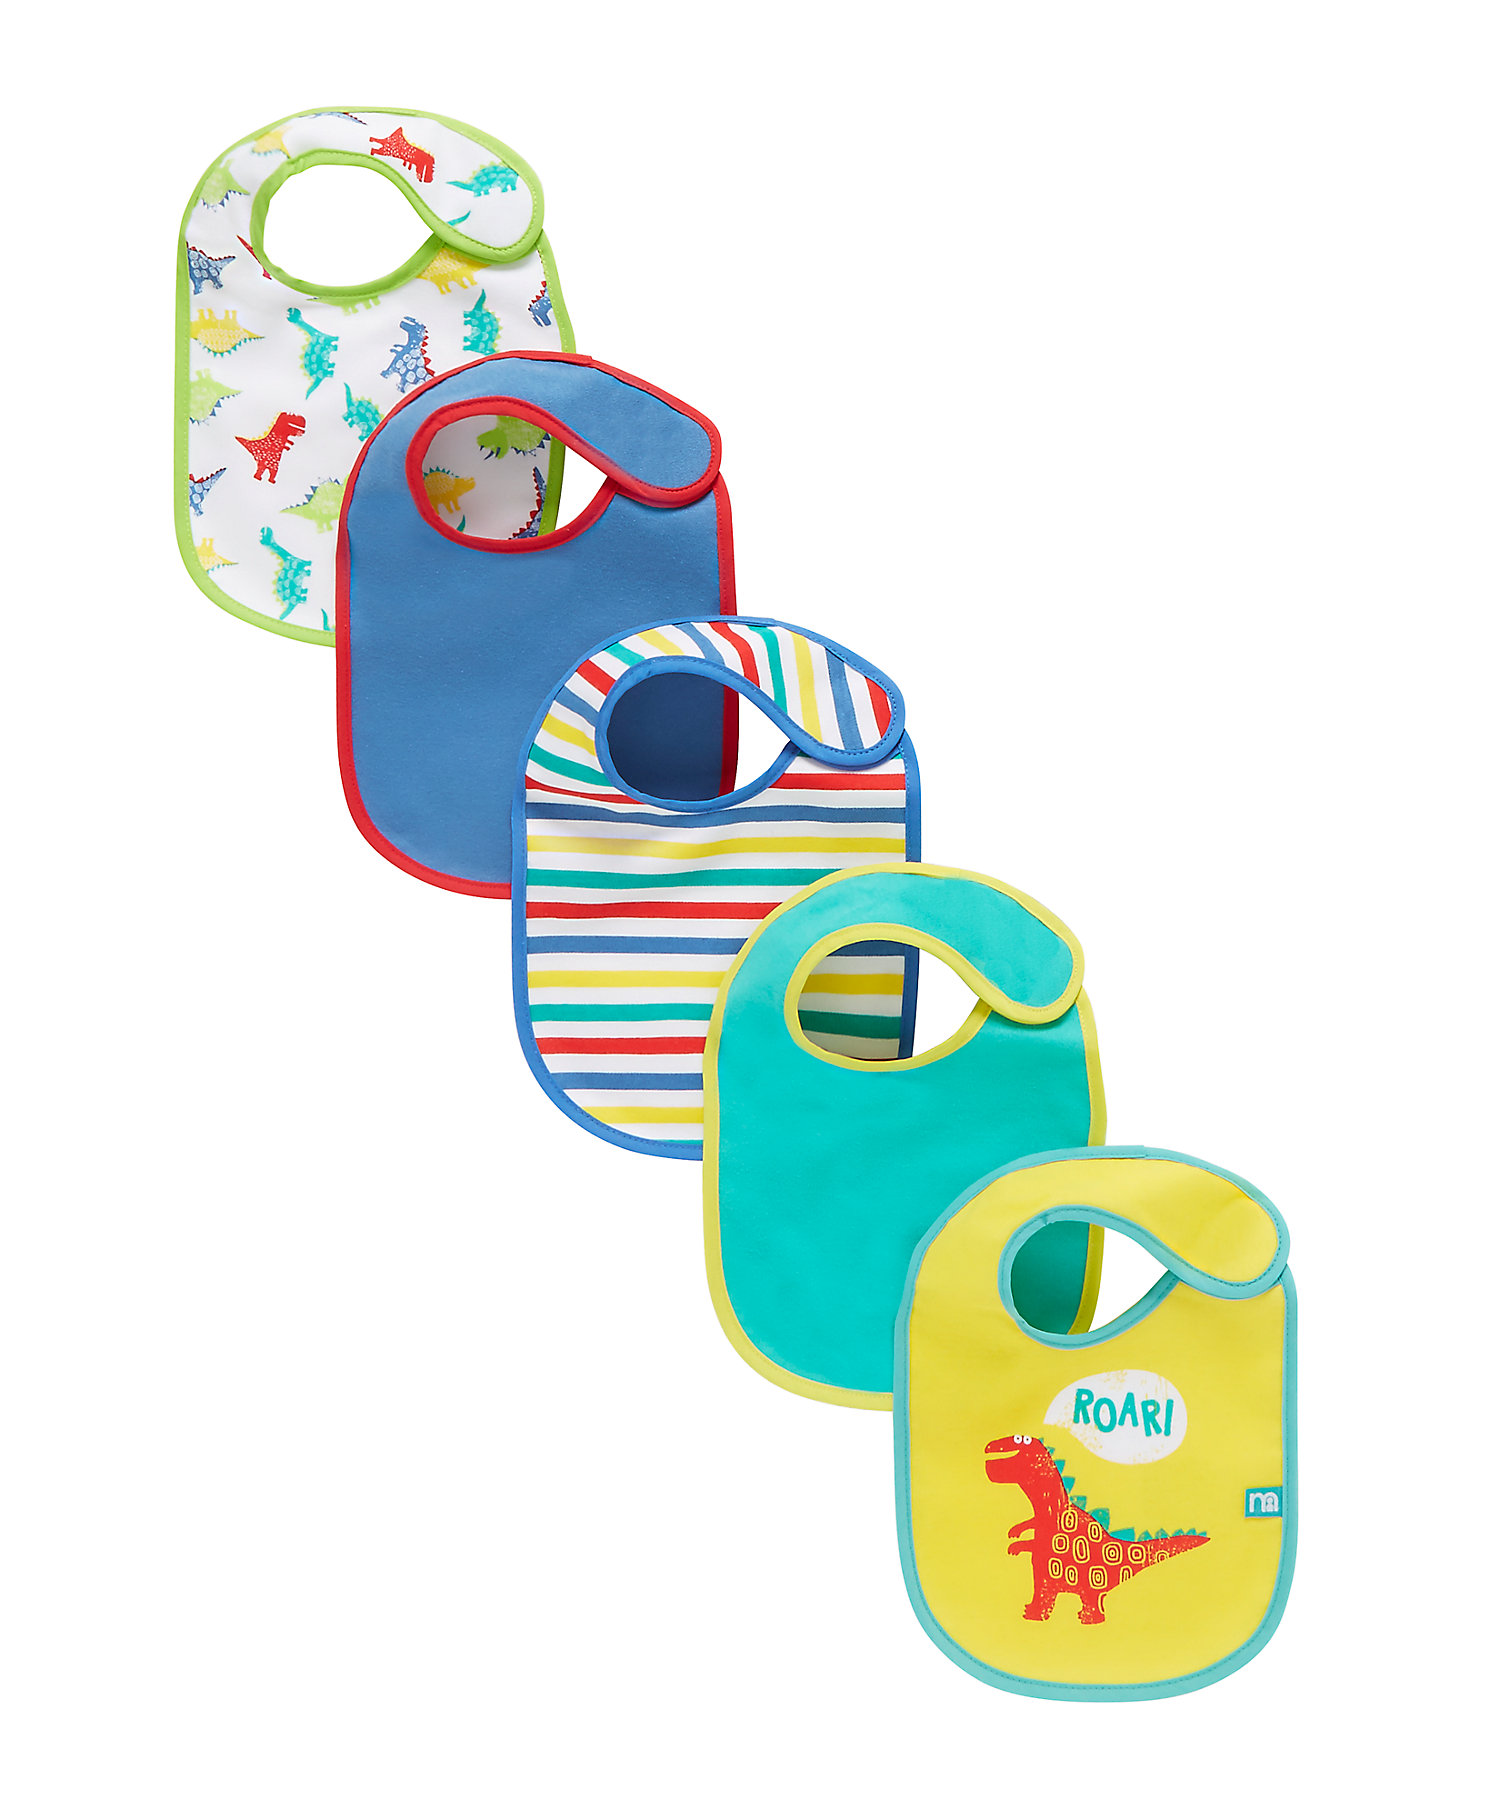 Mothercare   Multicoloured Printed Bibs - Set of 5